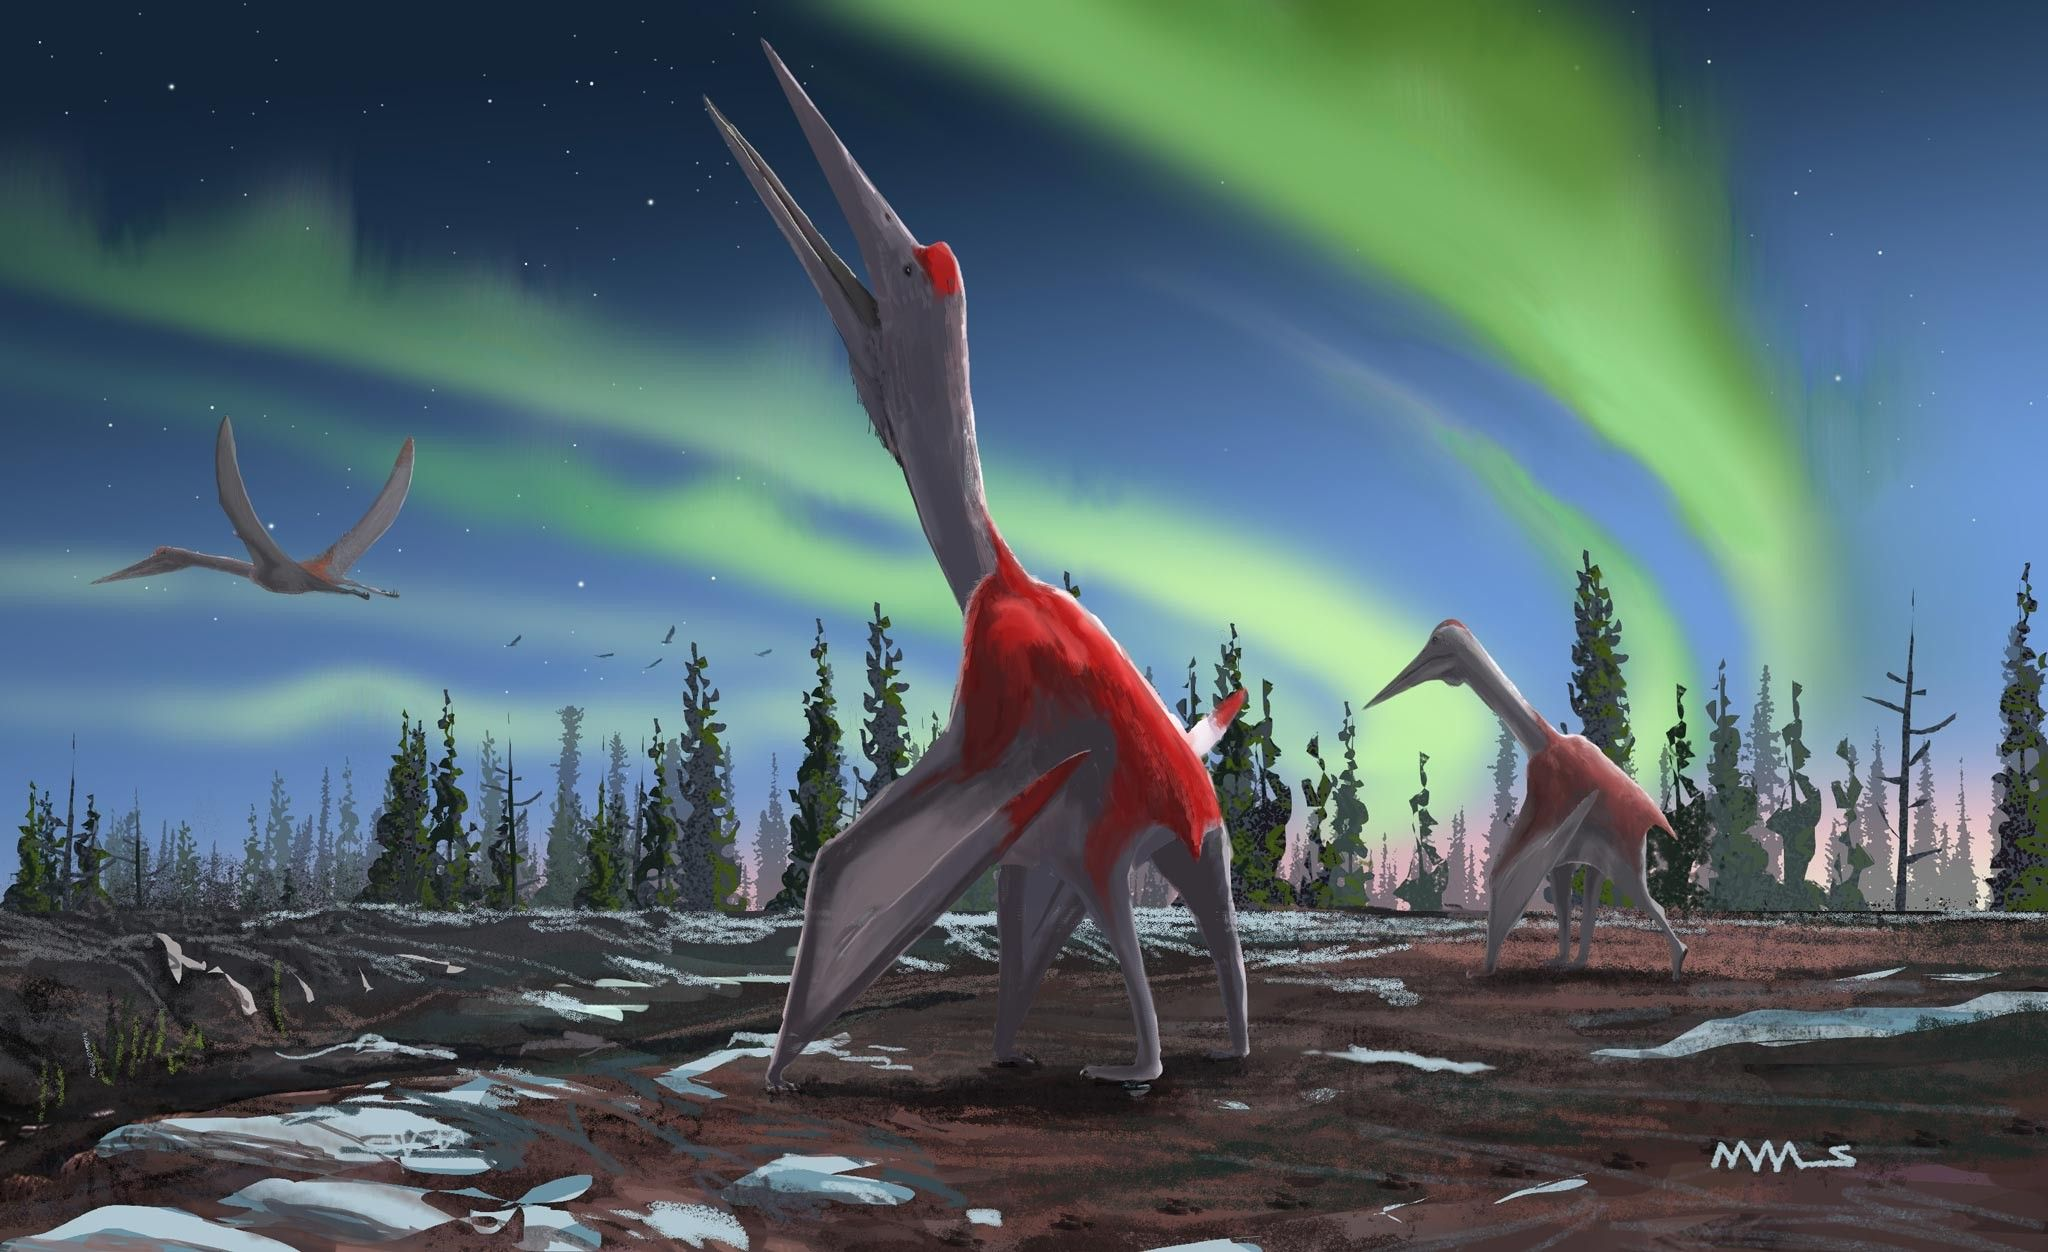 New 'frozen dragon' pterosaur found hiding in plain sight | National Geographic